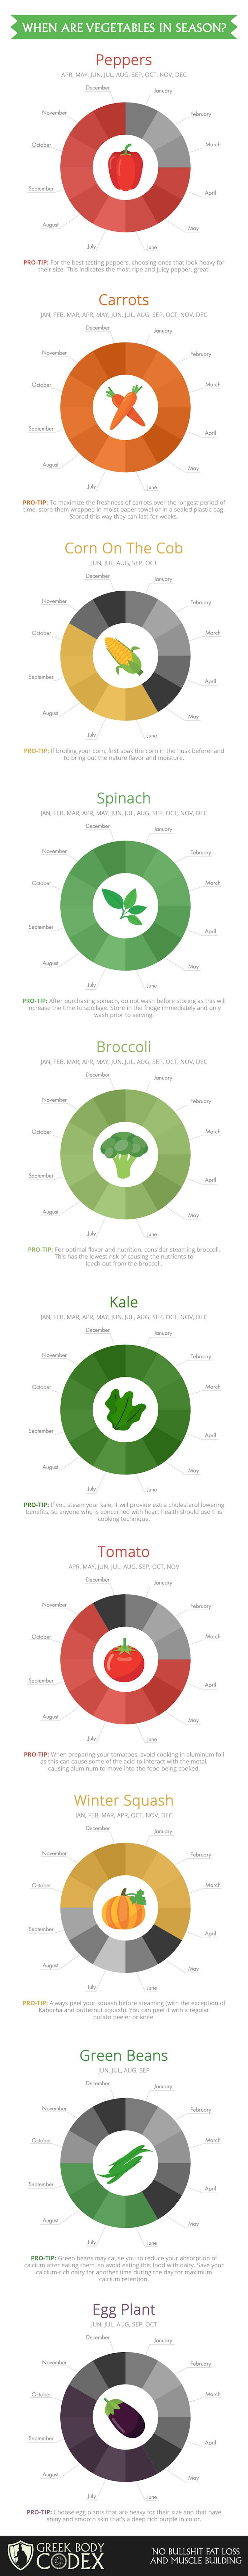 Here's When Fruits & Veggies Are In Season (Infographic)